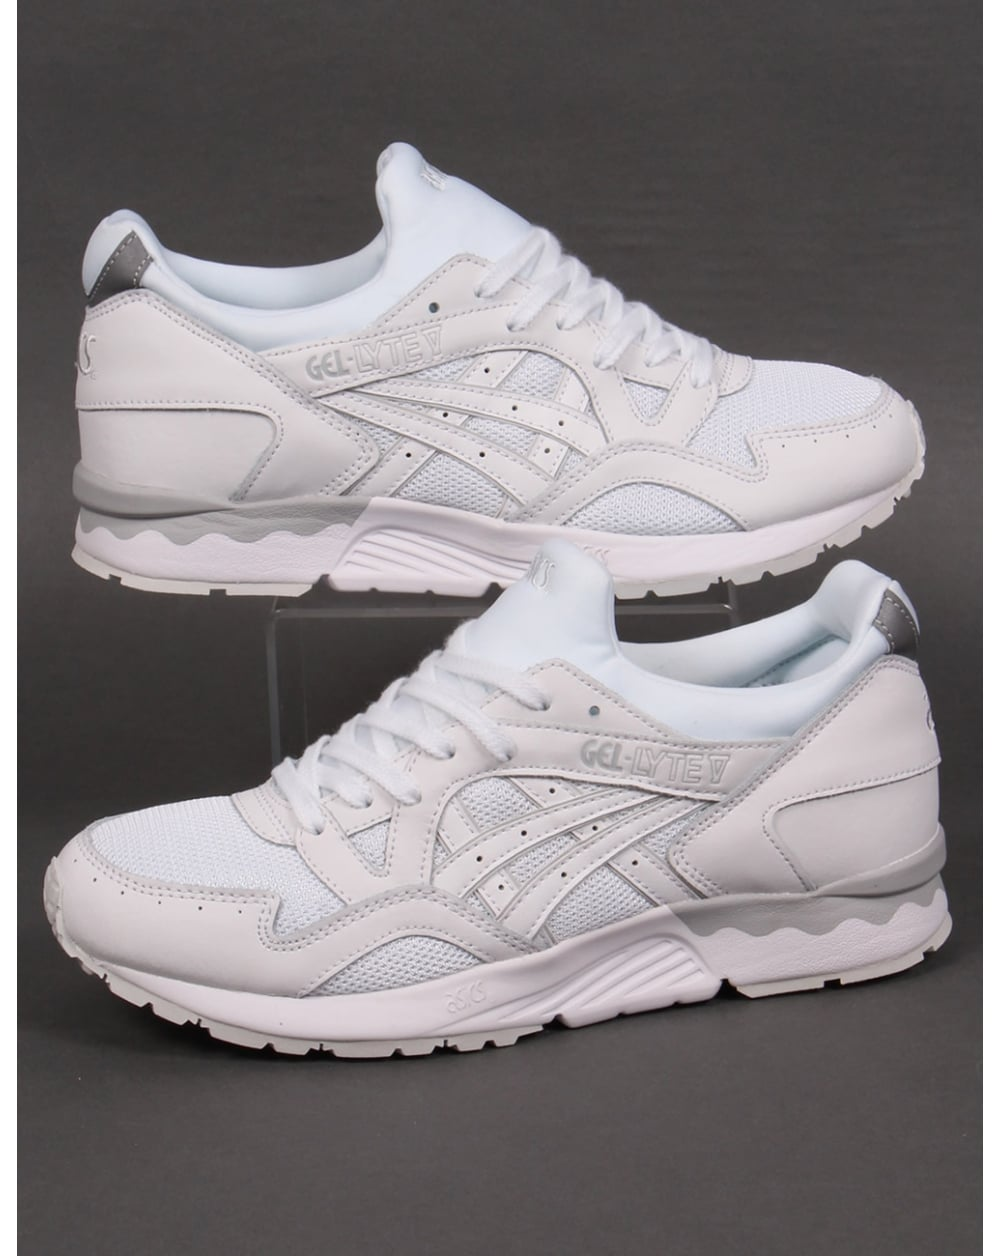 asics gel lyte v trainers white white 5 shoes runners sneakers. Black Bedroom Furniture Sets. Home Design Ideas